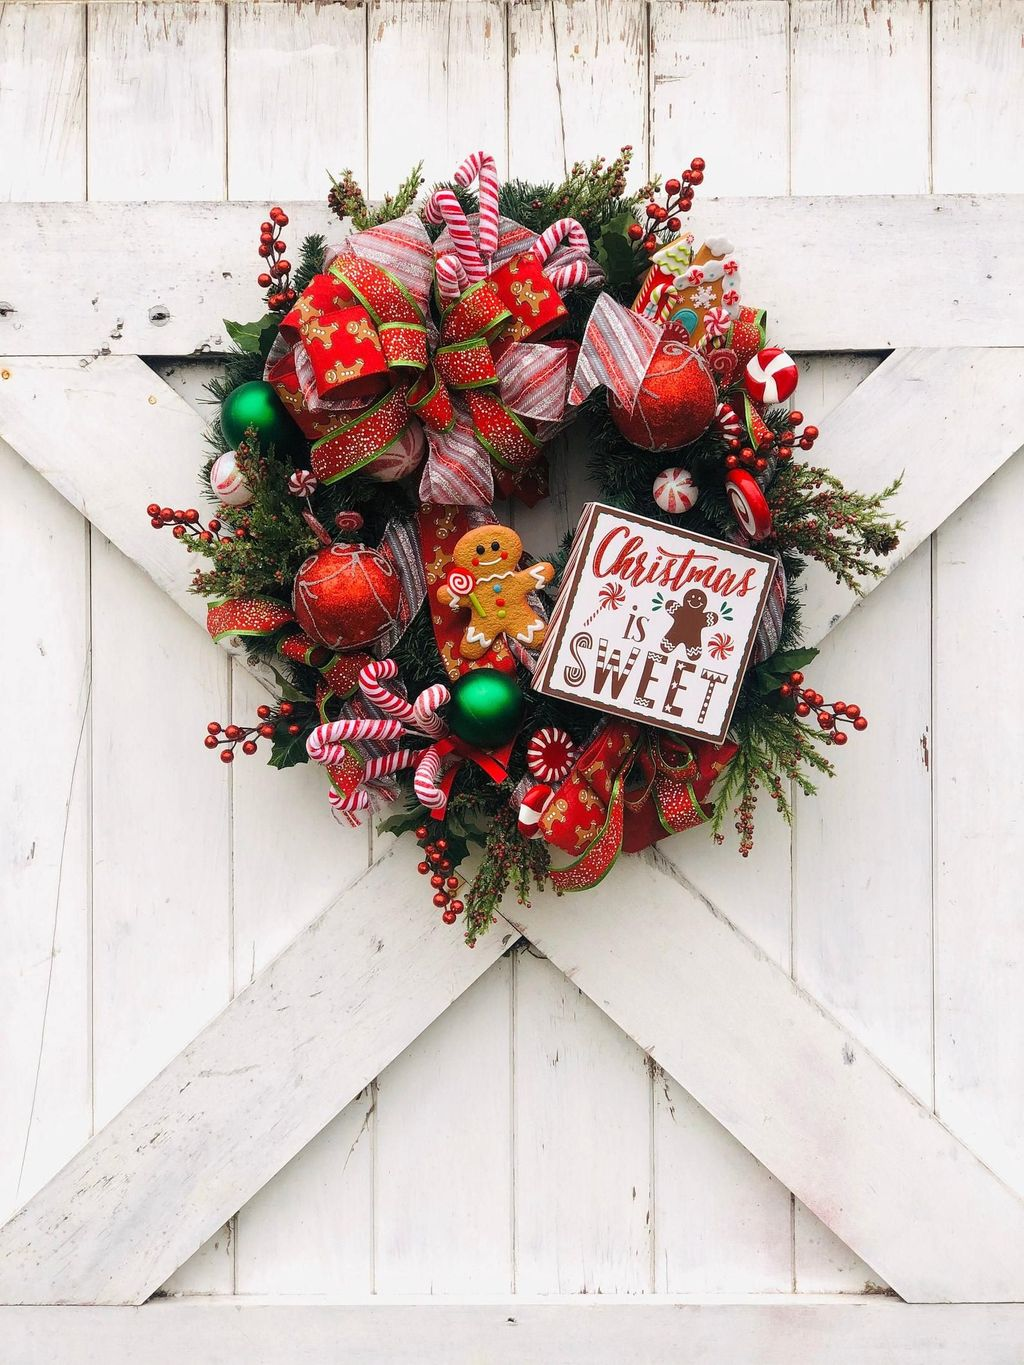 Fabulous Valentine Wreath Design Ideas FOr Your Front Door Decor 41